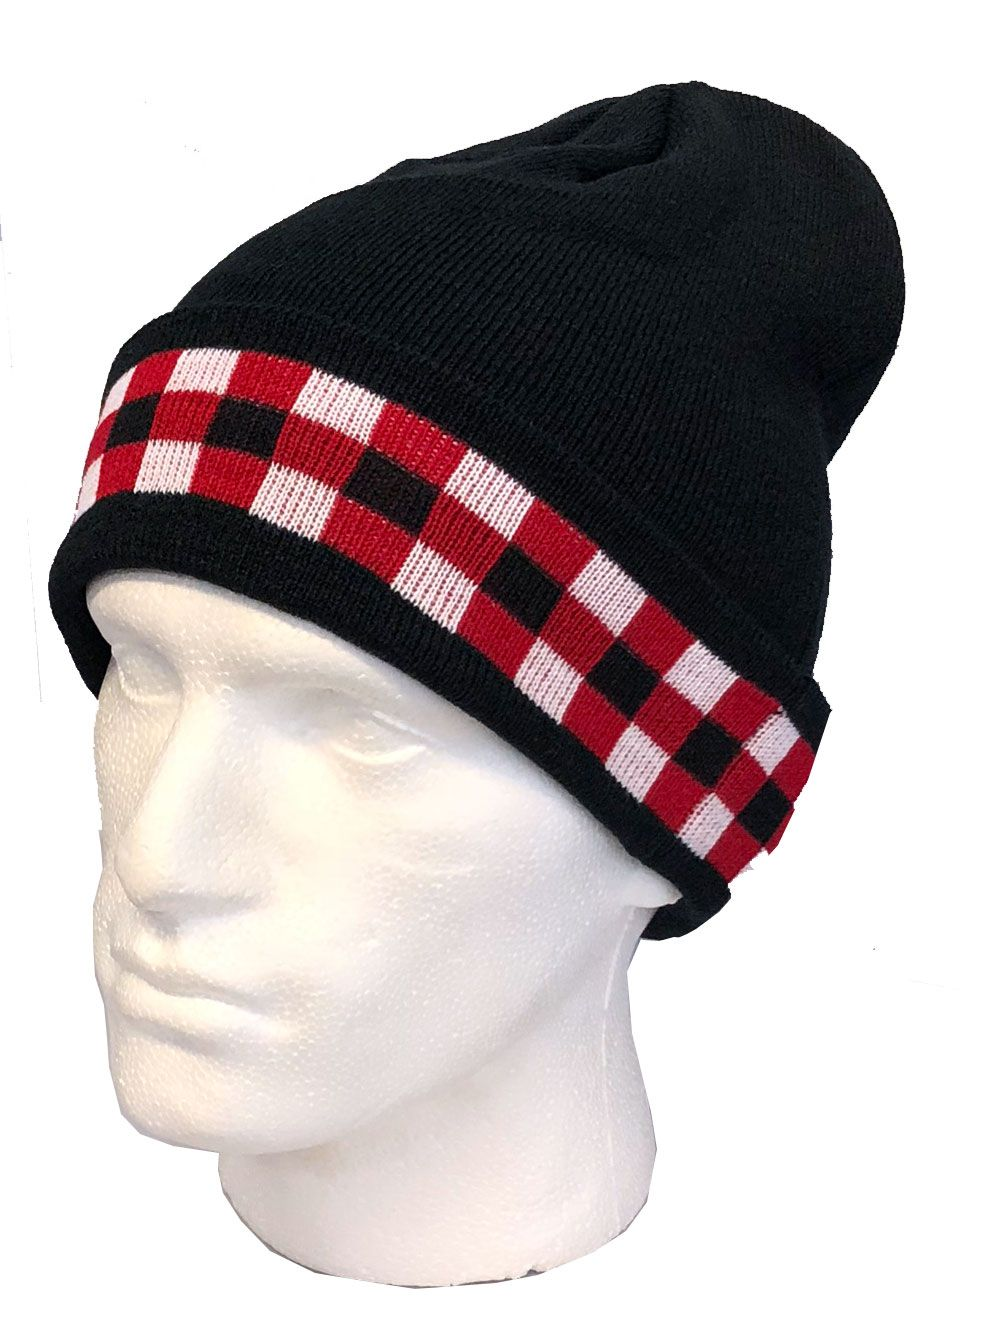 ea21086c504 Scottish Regiments Beanie Hat with the Regimental Dice normally found on a  glengarry hat. A unique beanie hat available from the Scottish Regimental  Store